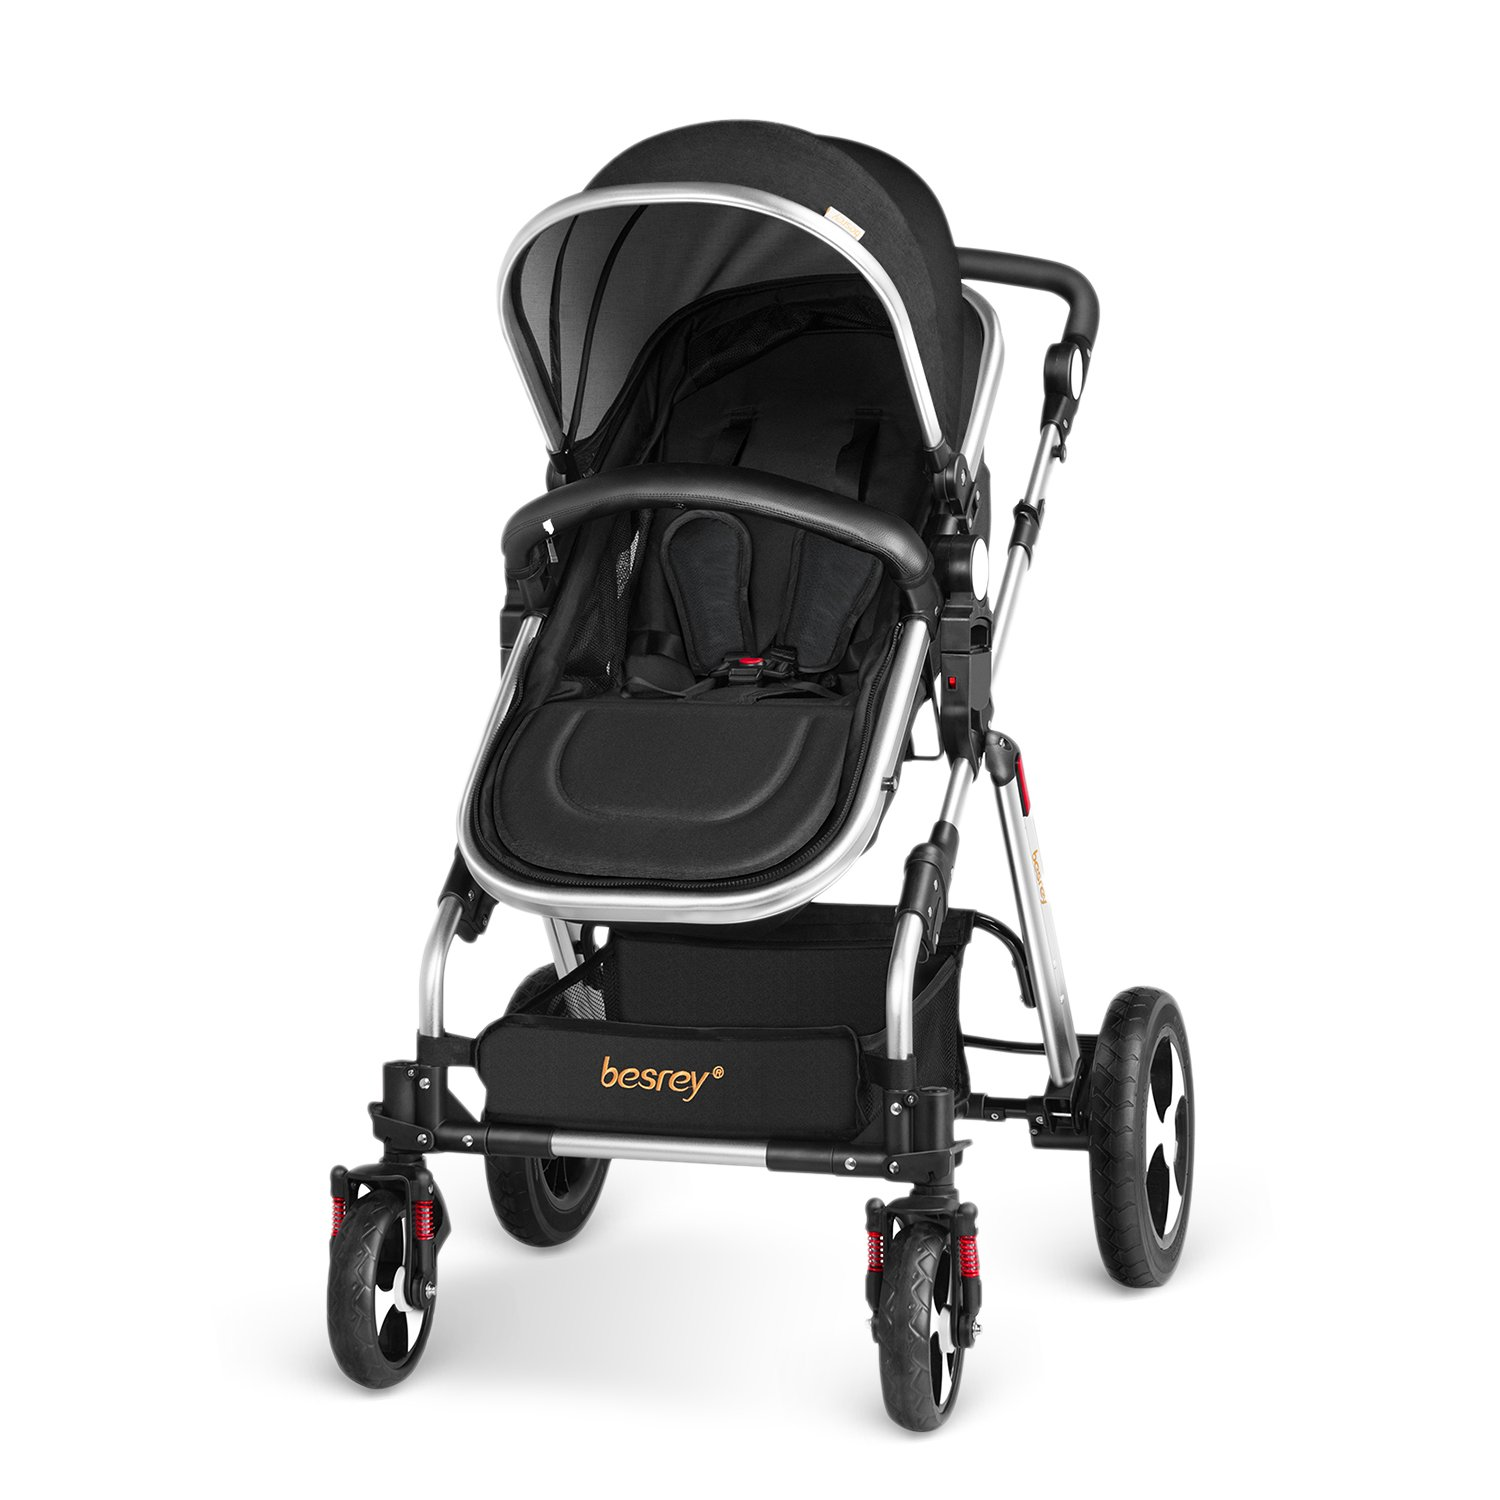 Besrey 2 in 1 Pushchair Baby Reclining Stroller Newborn Travel System Buggy with Shock Absorbers - Black BR-C7046